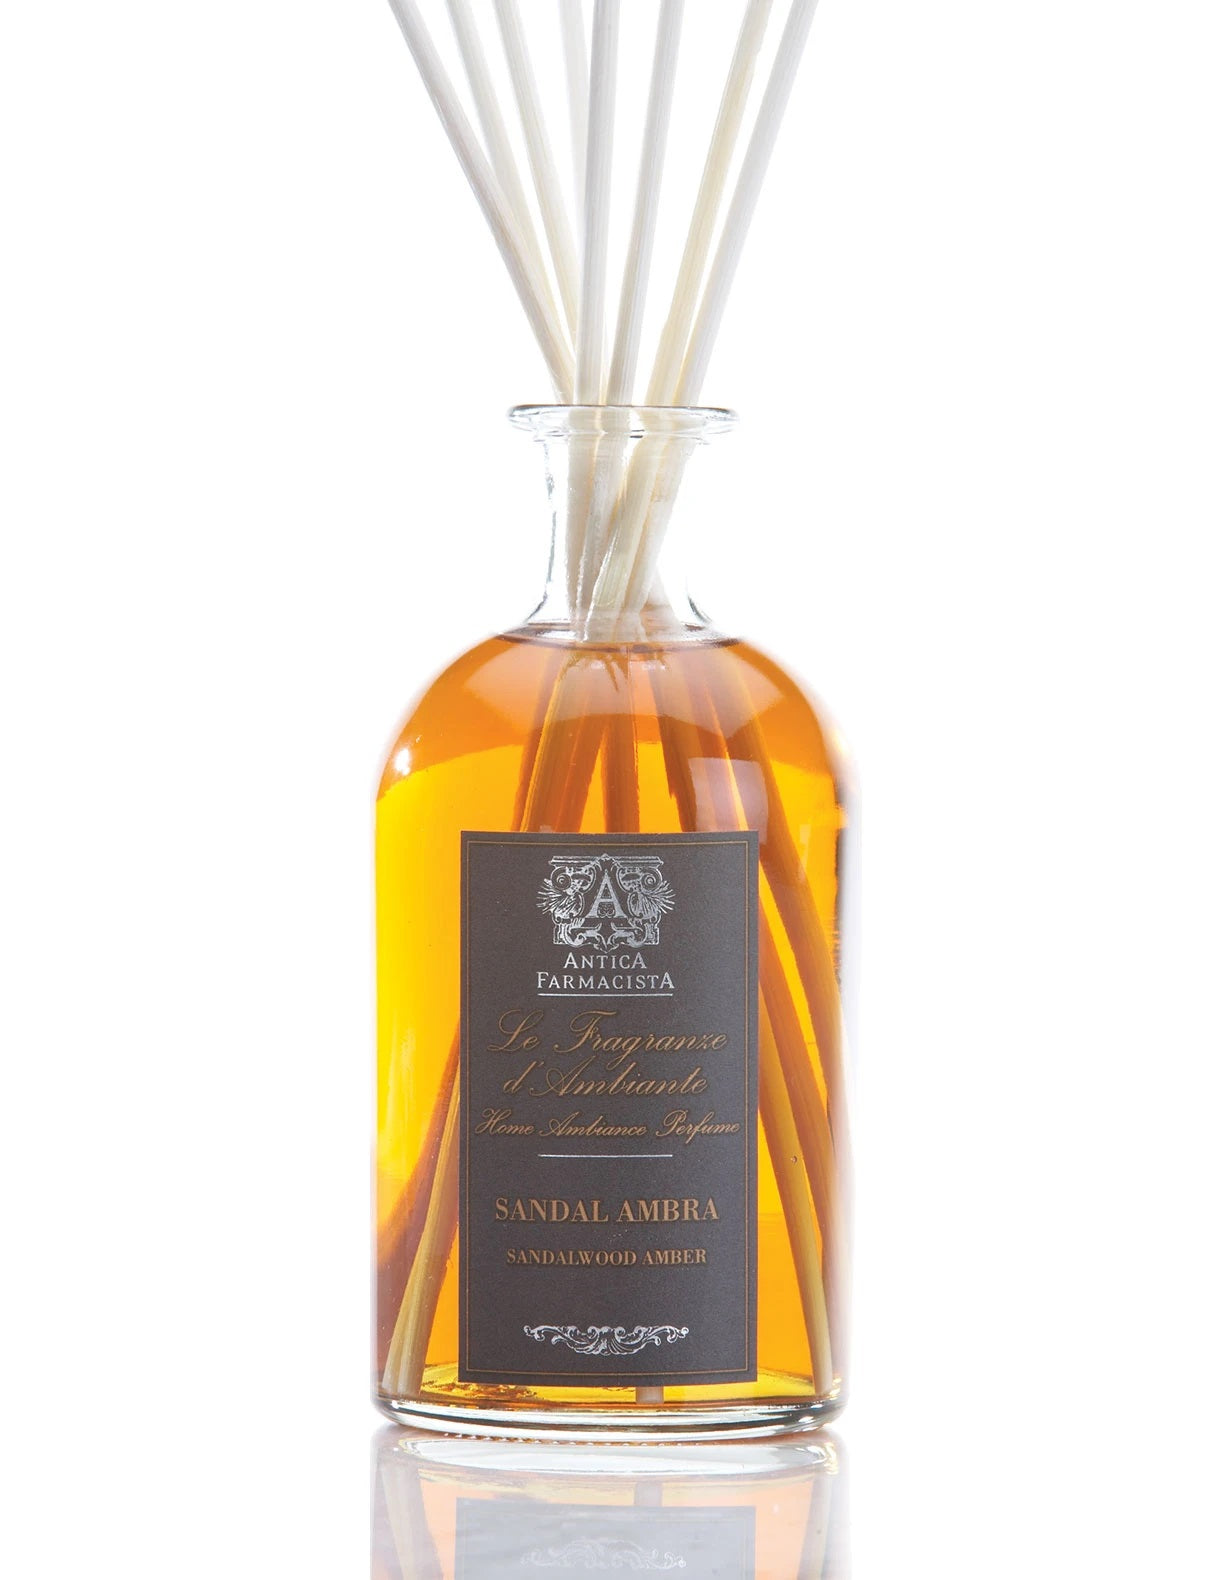 Sandalwood Amber 250 ml Room Diffuser by Antica Farmacista